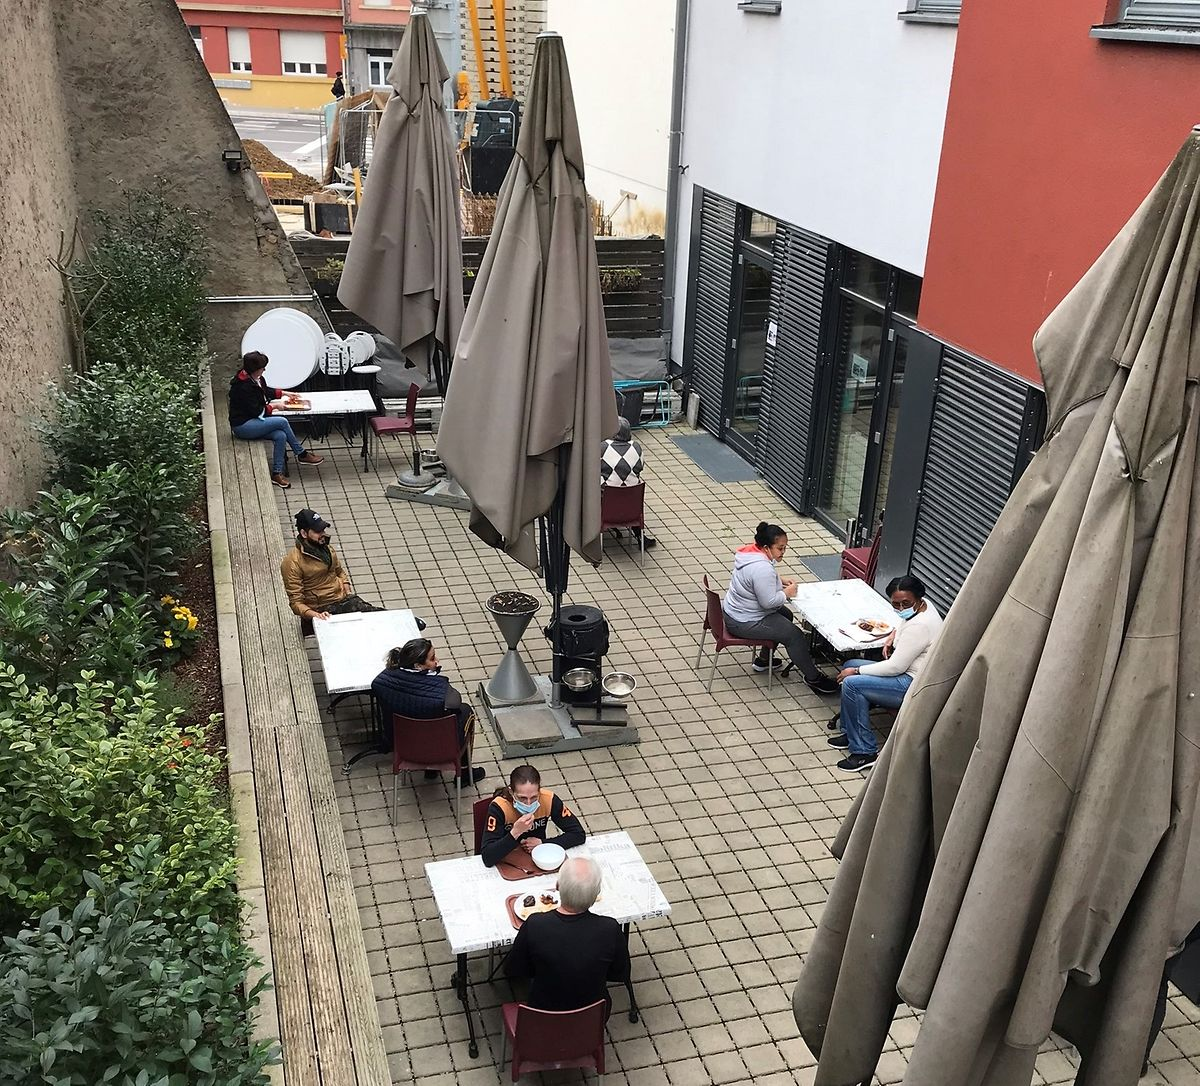 A heated terrace will allow the charity to feed more groups of people under the current pandemic sanitary requirements Photo: Stëmm vun der Strooss